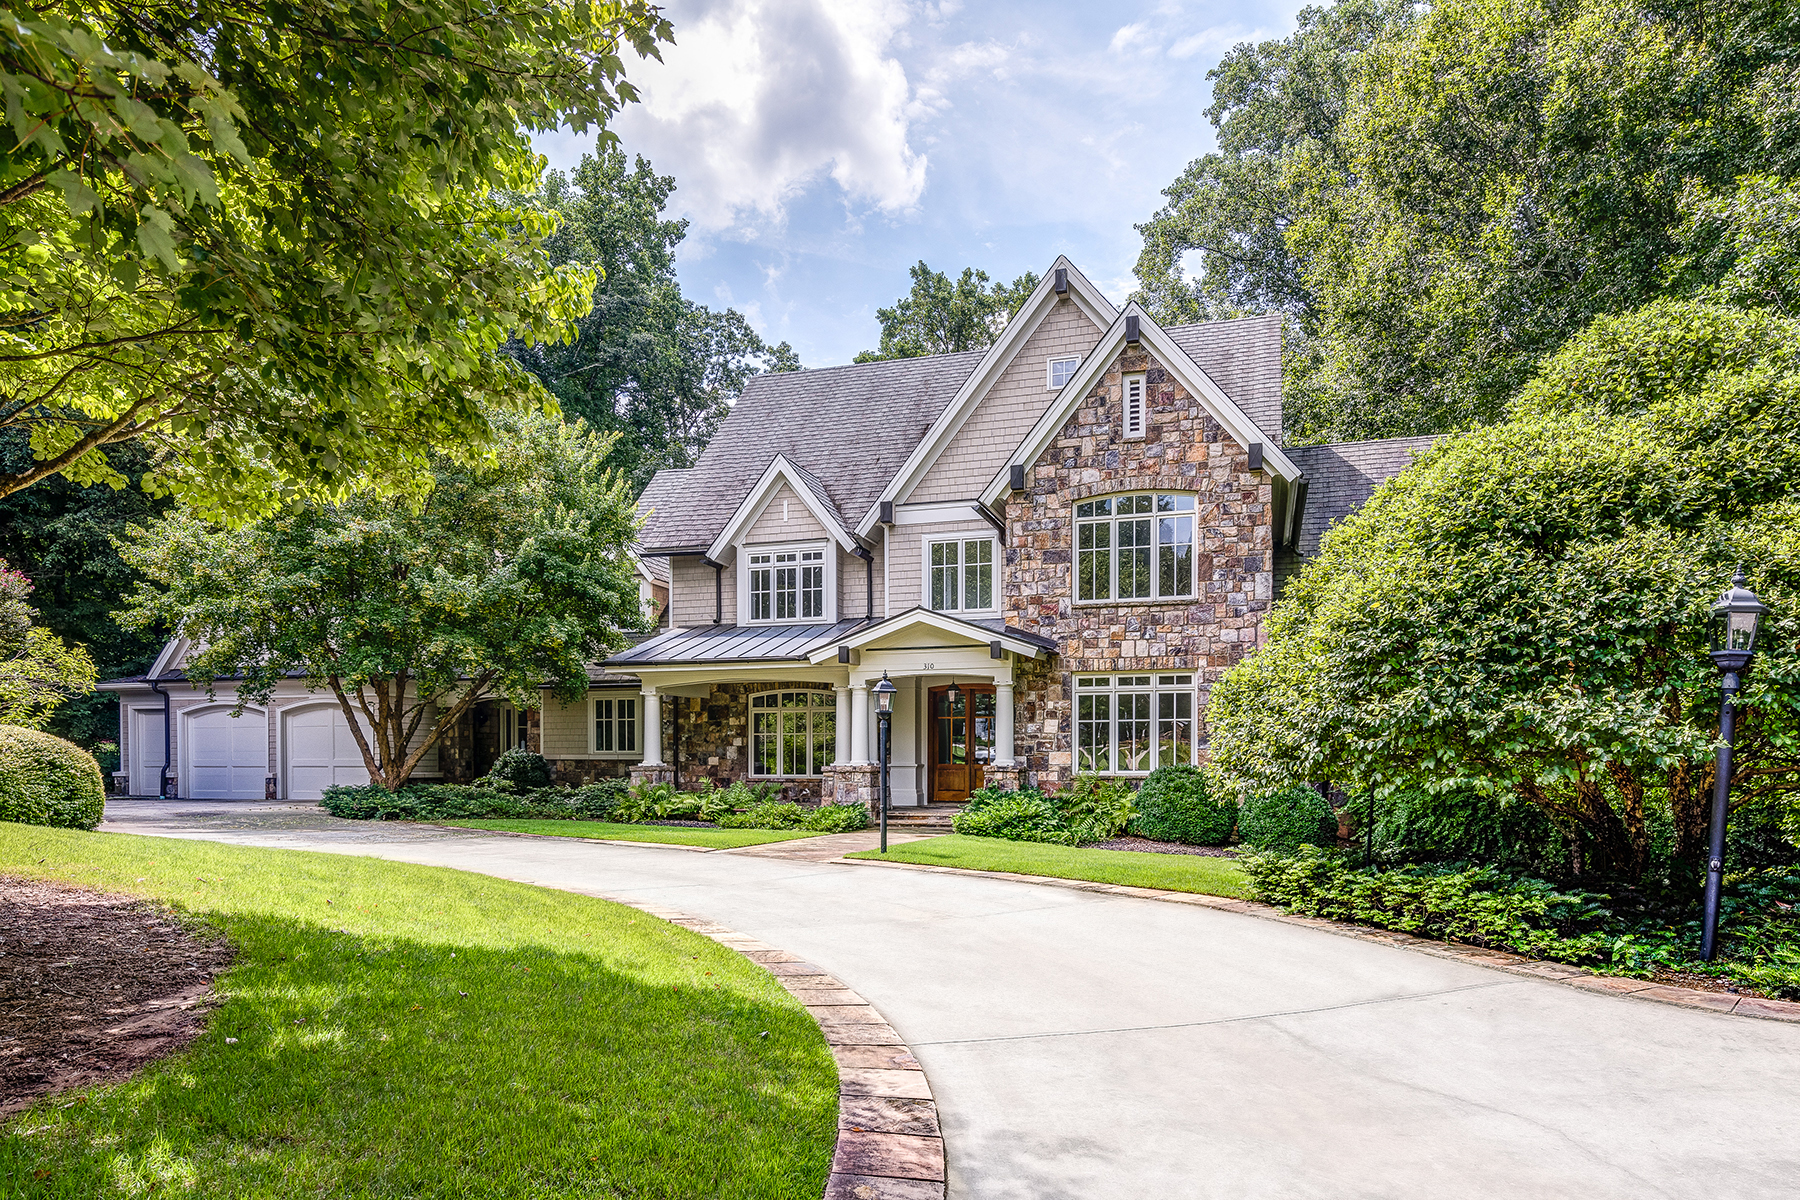 Single Family Home for Sale at Brilliant Custom Historic Design 310 Tara Trail NW Sandy Springs, Georgia 30327 United States